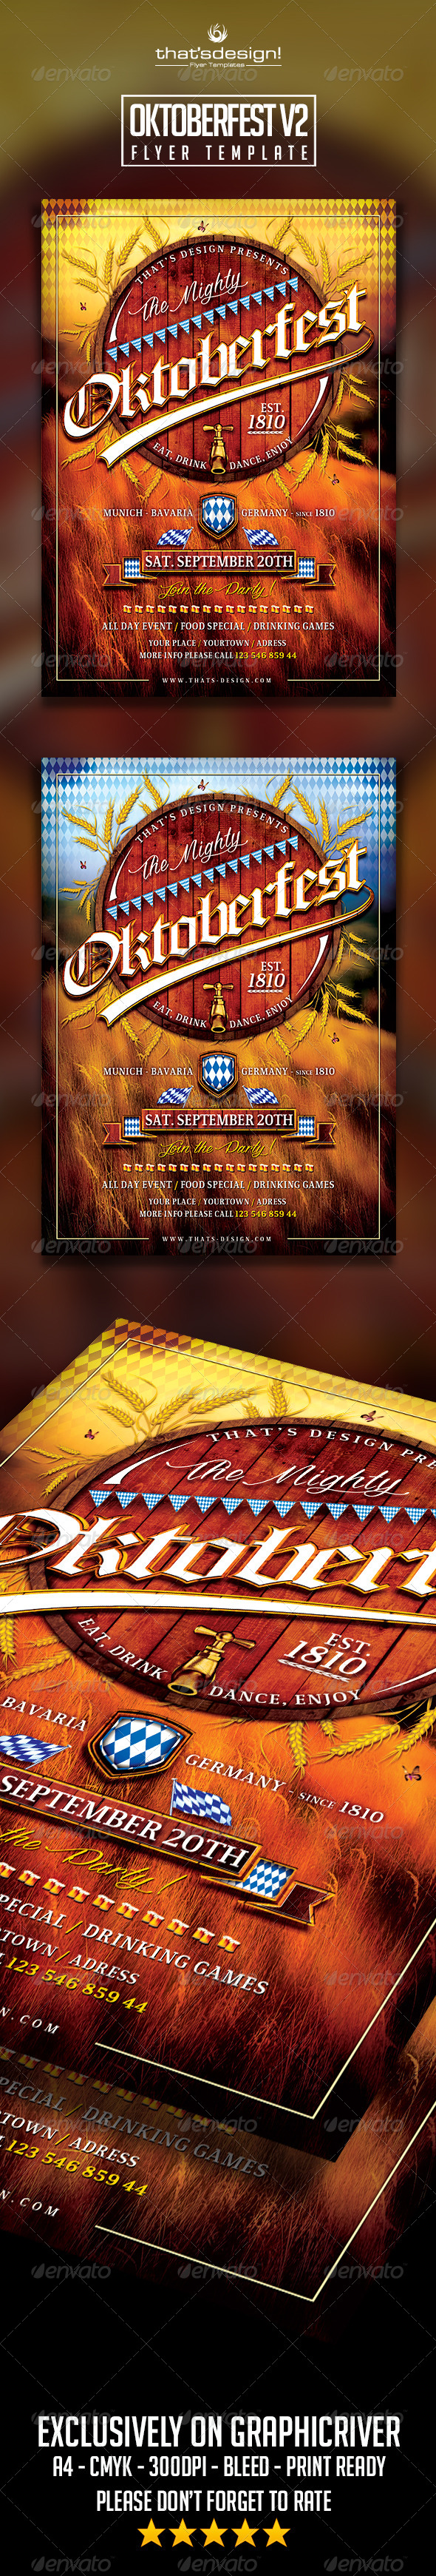 GraphicRiver Oktoberfest Flyer Template V2 8612739